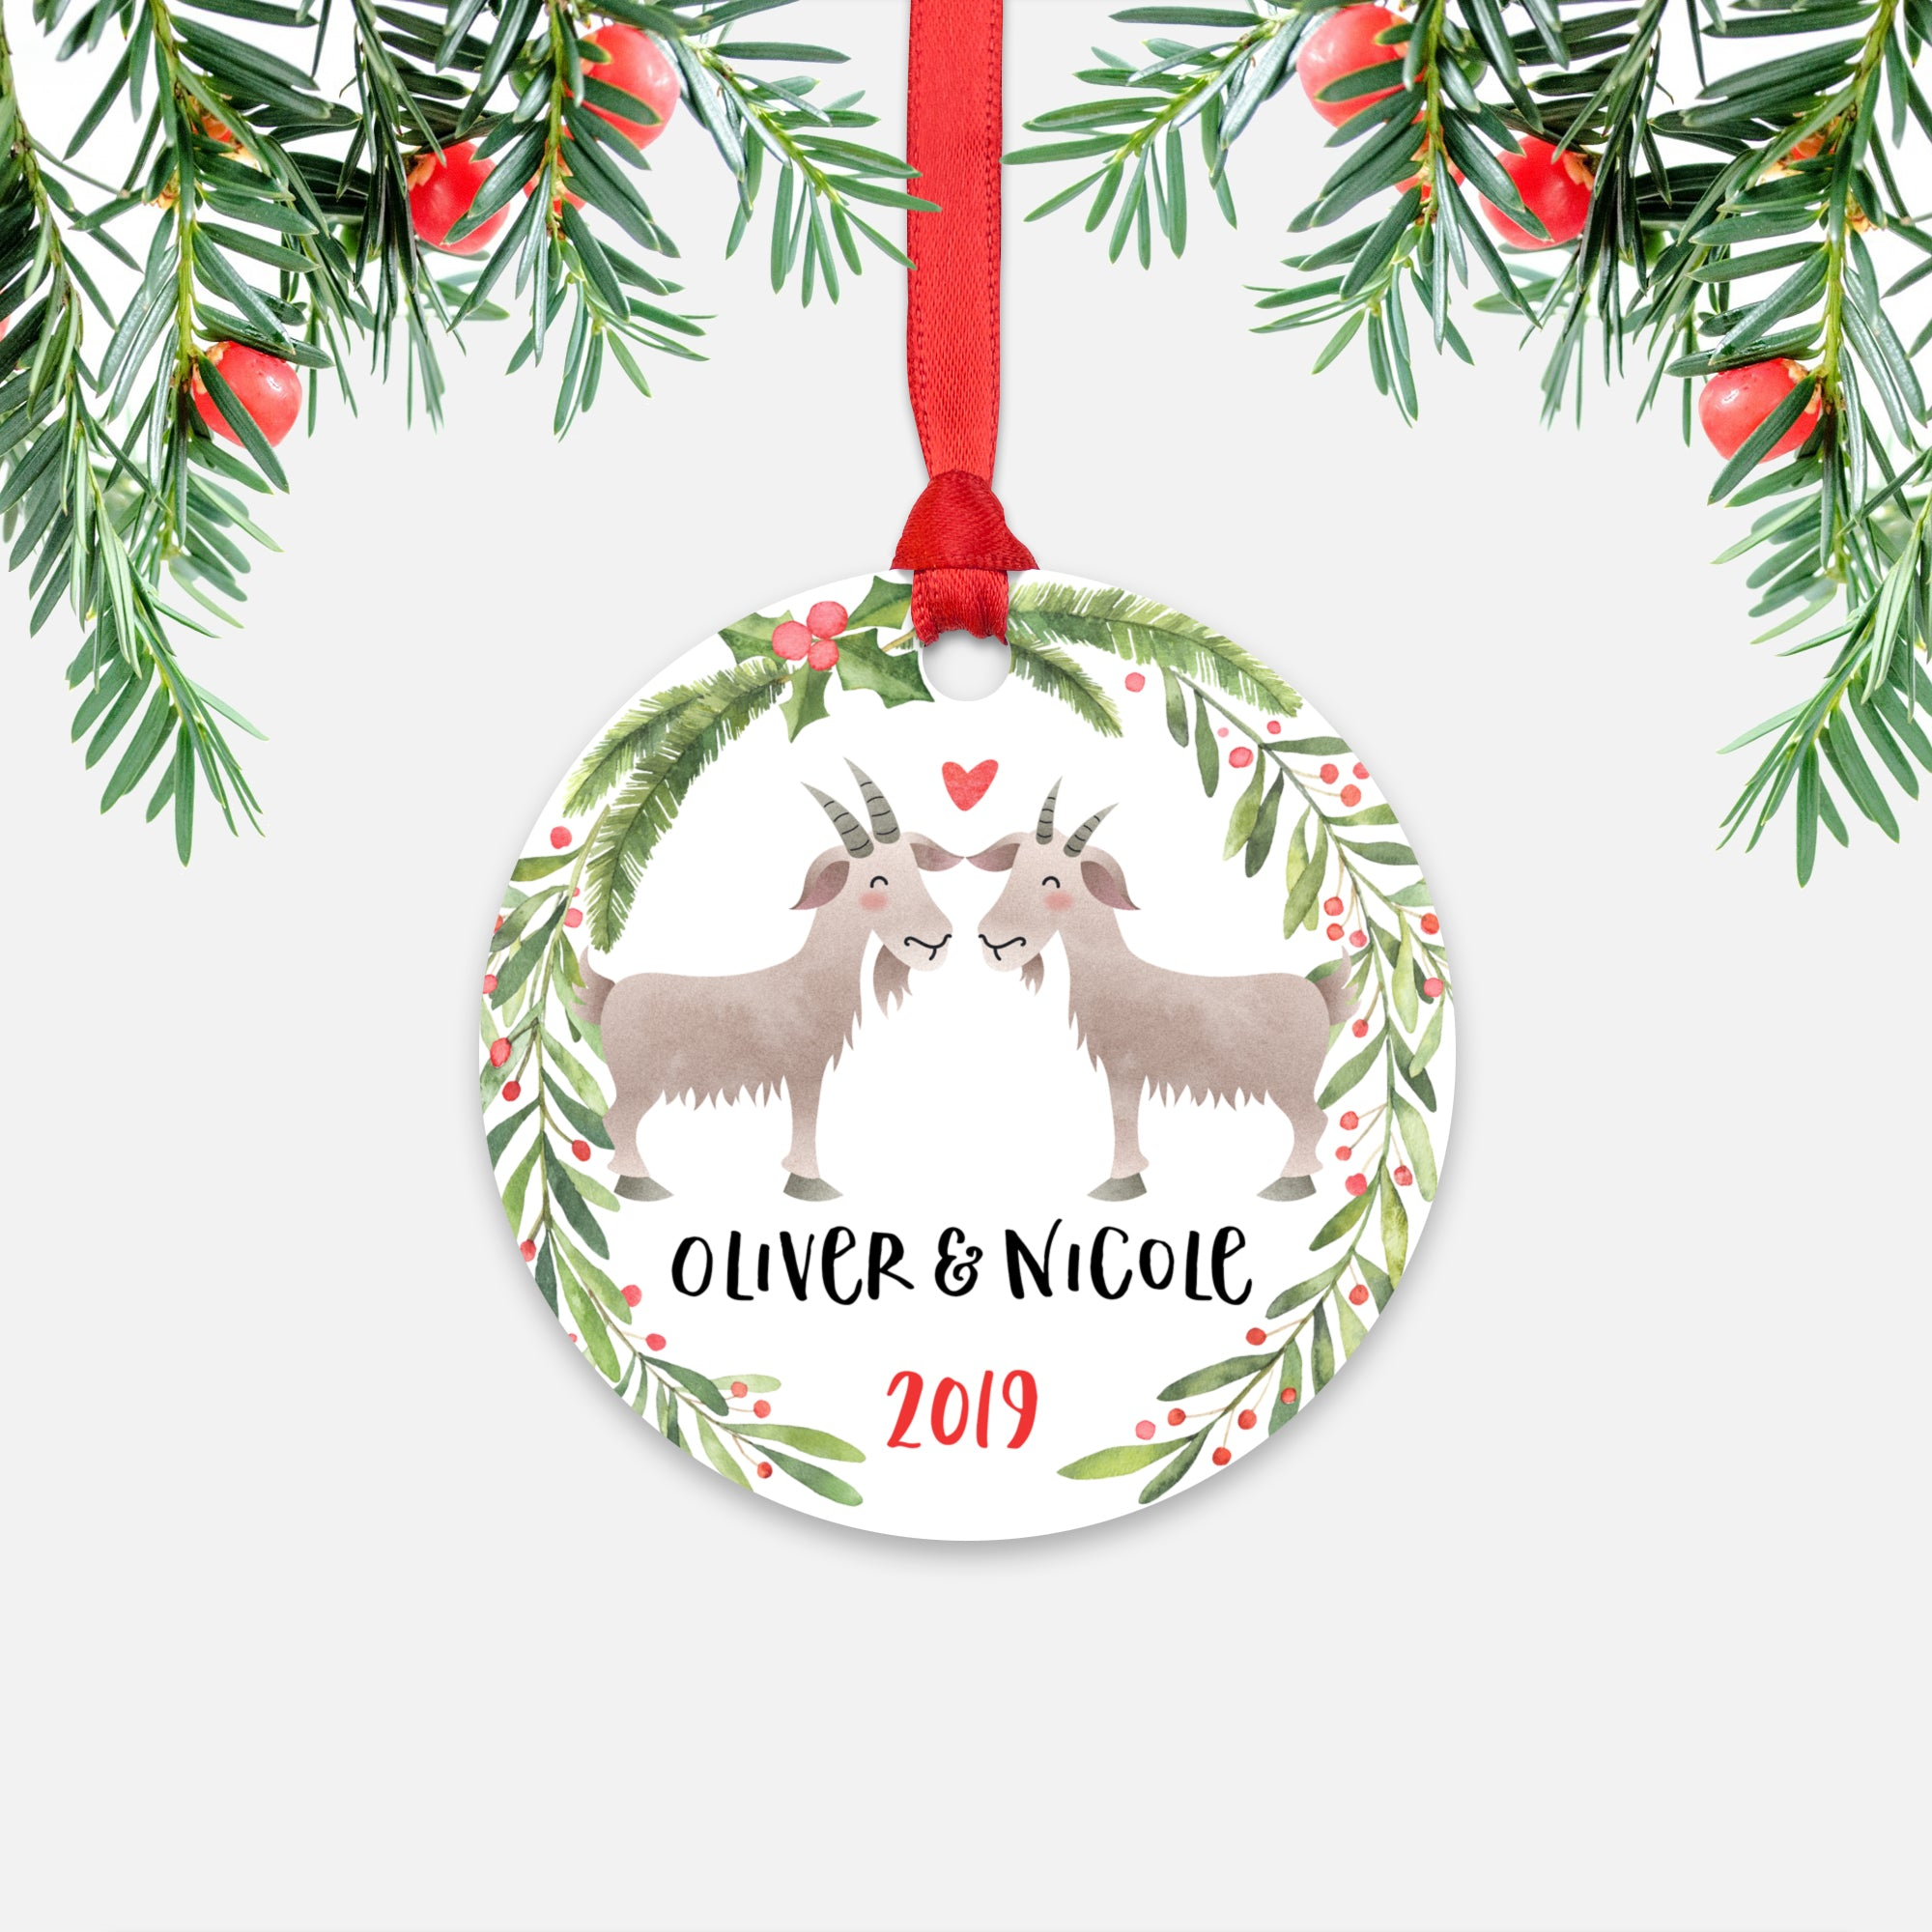 Goat Couple Personalized Christmas Ornament - Holidays Custom Gift for Animal Lover Wedding Engagement Newlyweds Wife Husband Boyfriend Girlfriend - Round Aluminum - Red Ribbon Hanging in Tree - by Happy Cat Prints